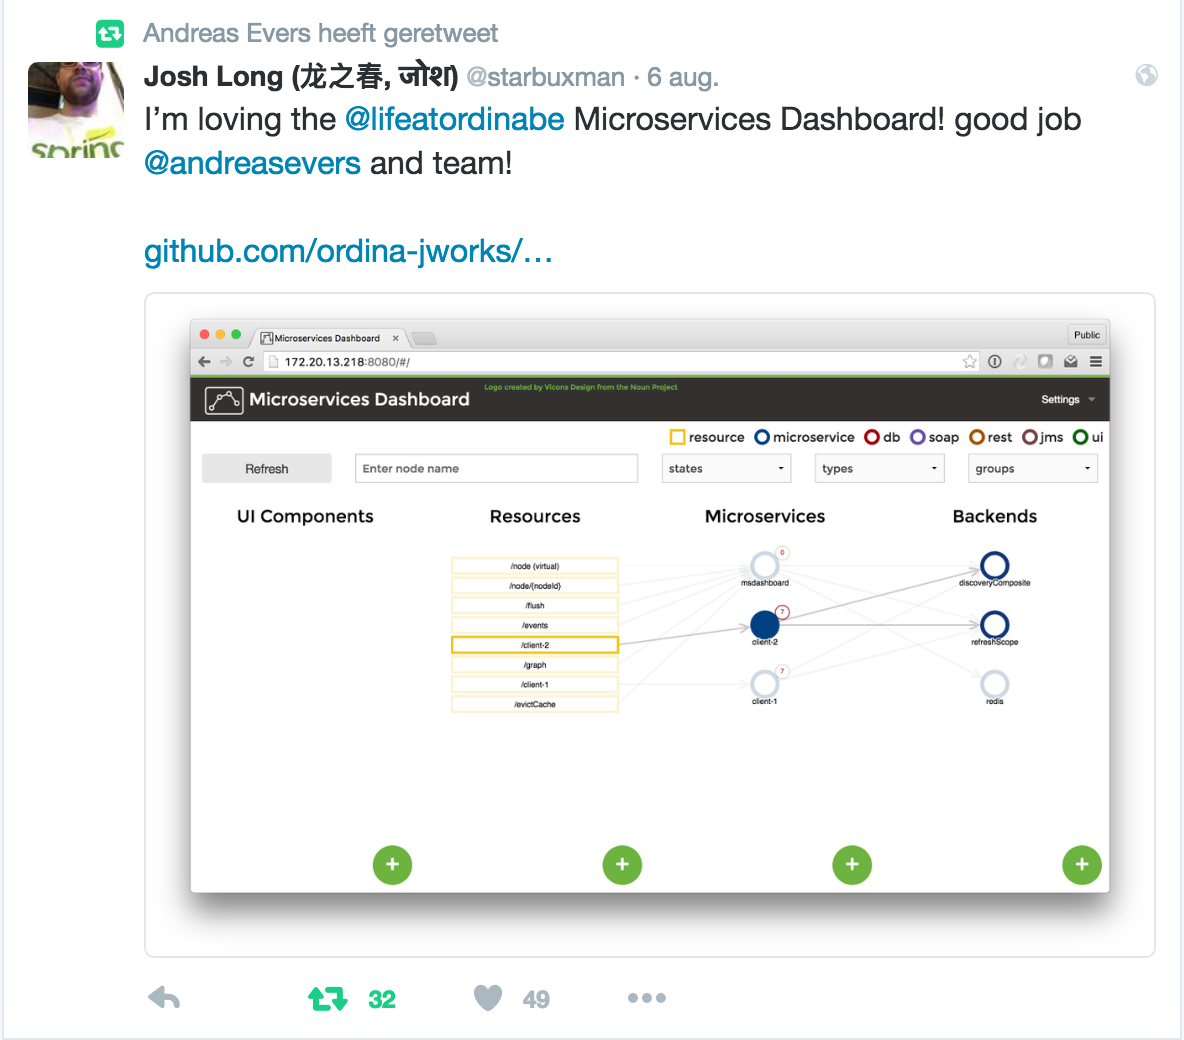 Microservices Dashboard